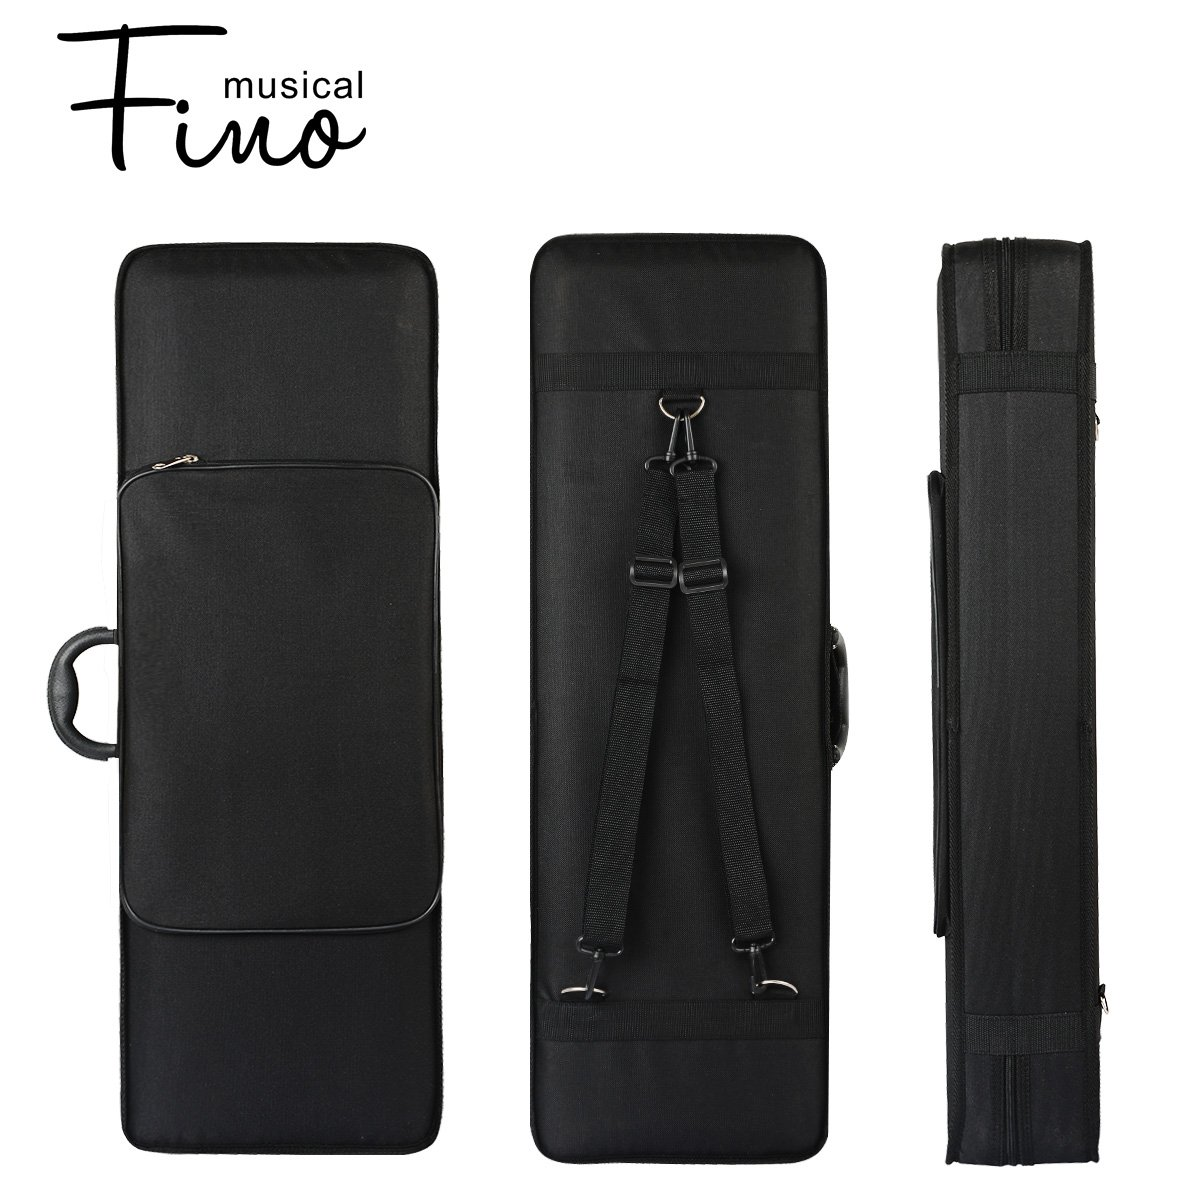 4/4 Full Size Violin Case,FINO Professional OblongViolin Hard Case with Built-in Hygrometer,Super Lightweight Portable Carrying Bag Slip-On Cover with Backpack Straps,Black